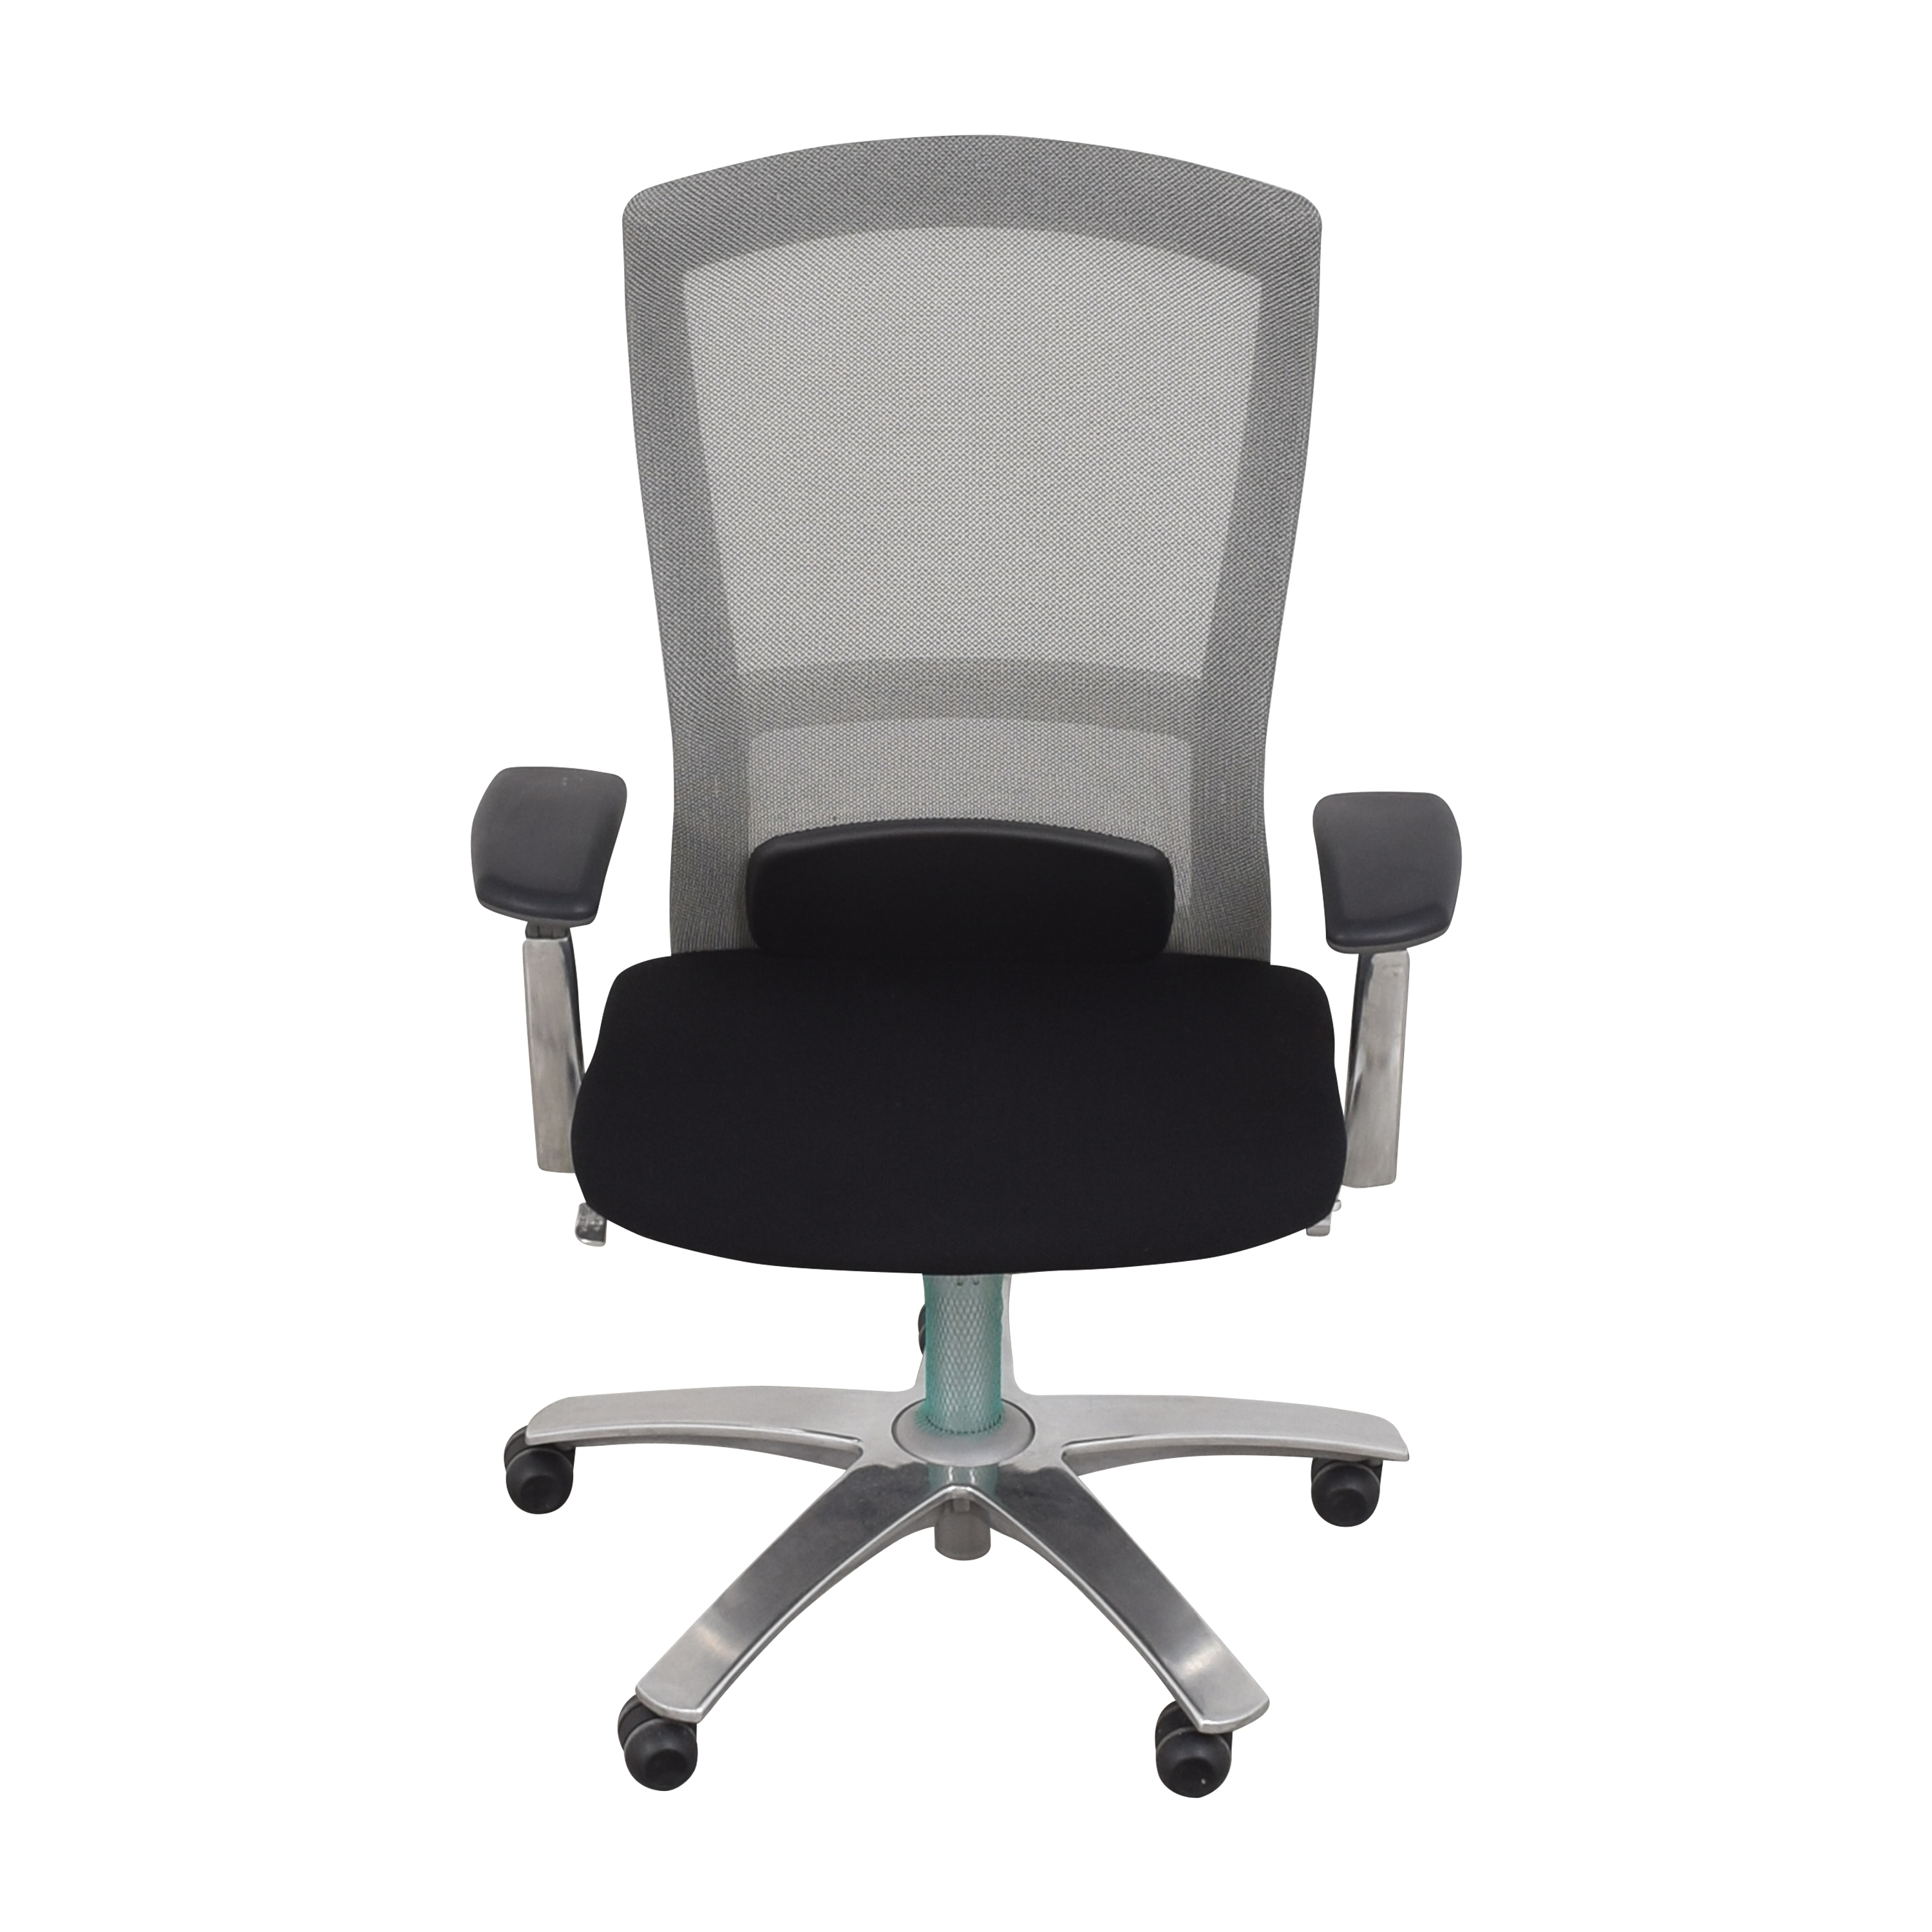 Knoll Knoll Life Office Chair coupon